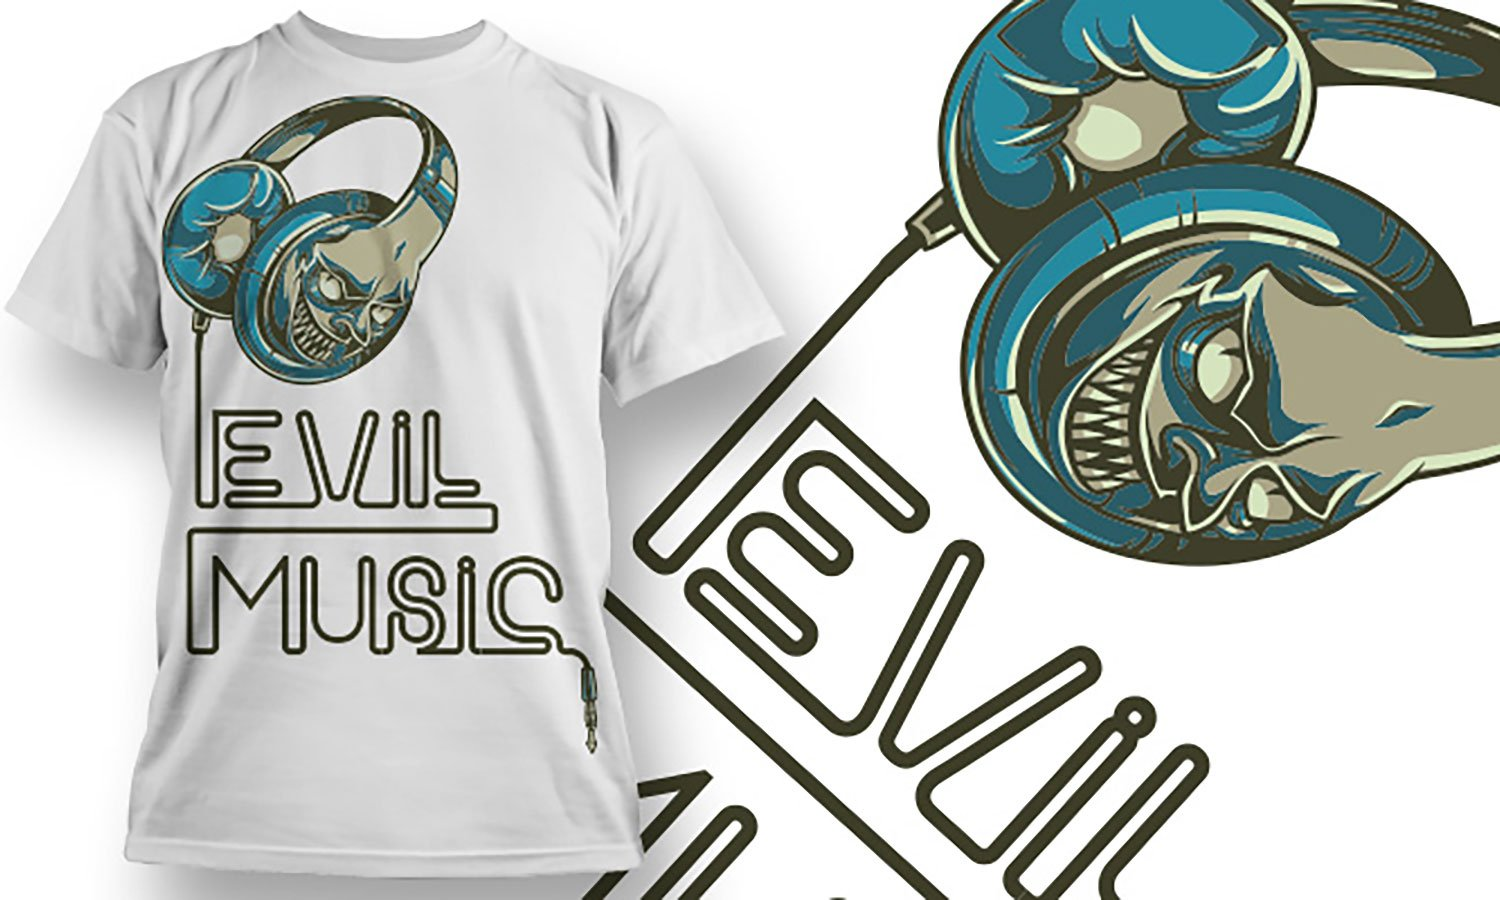 Evil Music - Printed T-Shirt for Men, Women and Kids - TS369